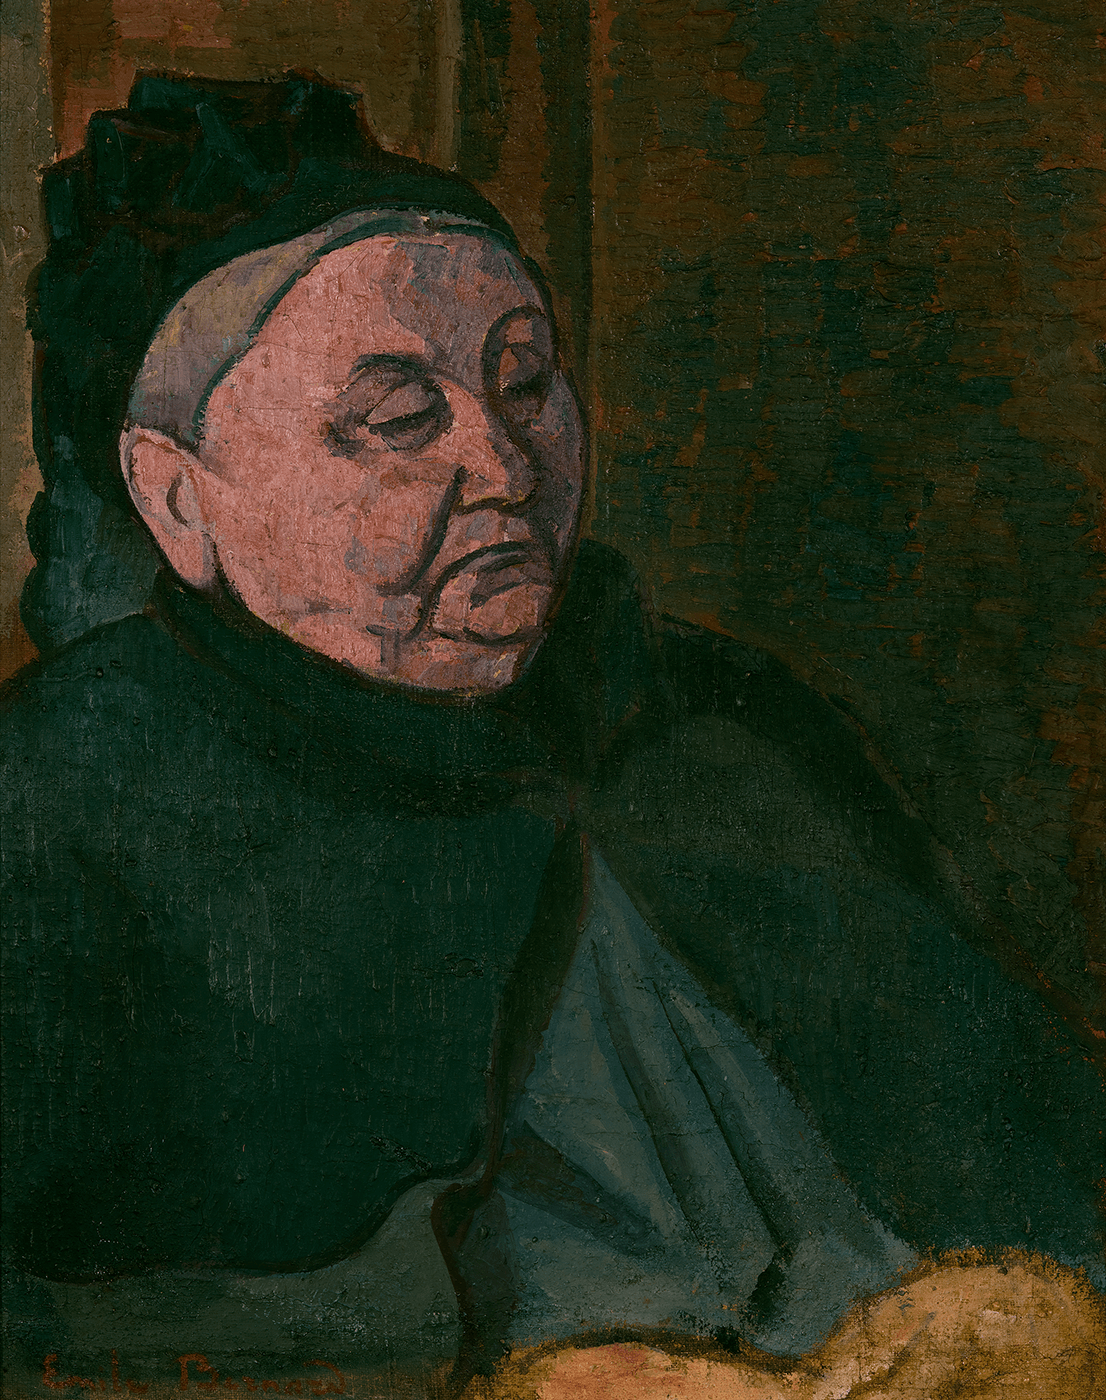 An older woman against a curtained backdrop. Her figure outlined in black and she wears a cloak buttoned at her neck. She wears a hat over her gray hair.